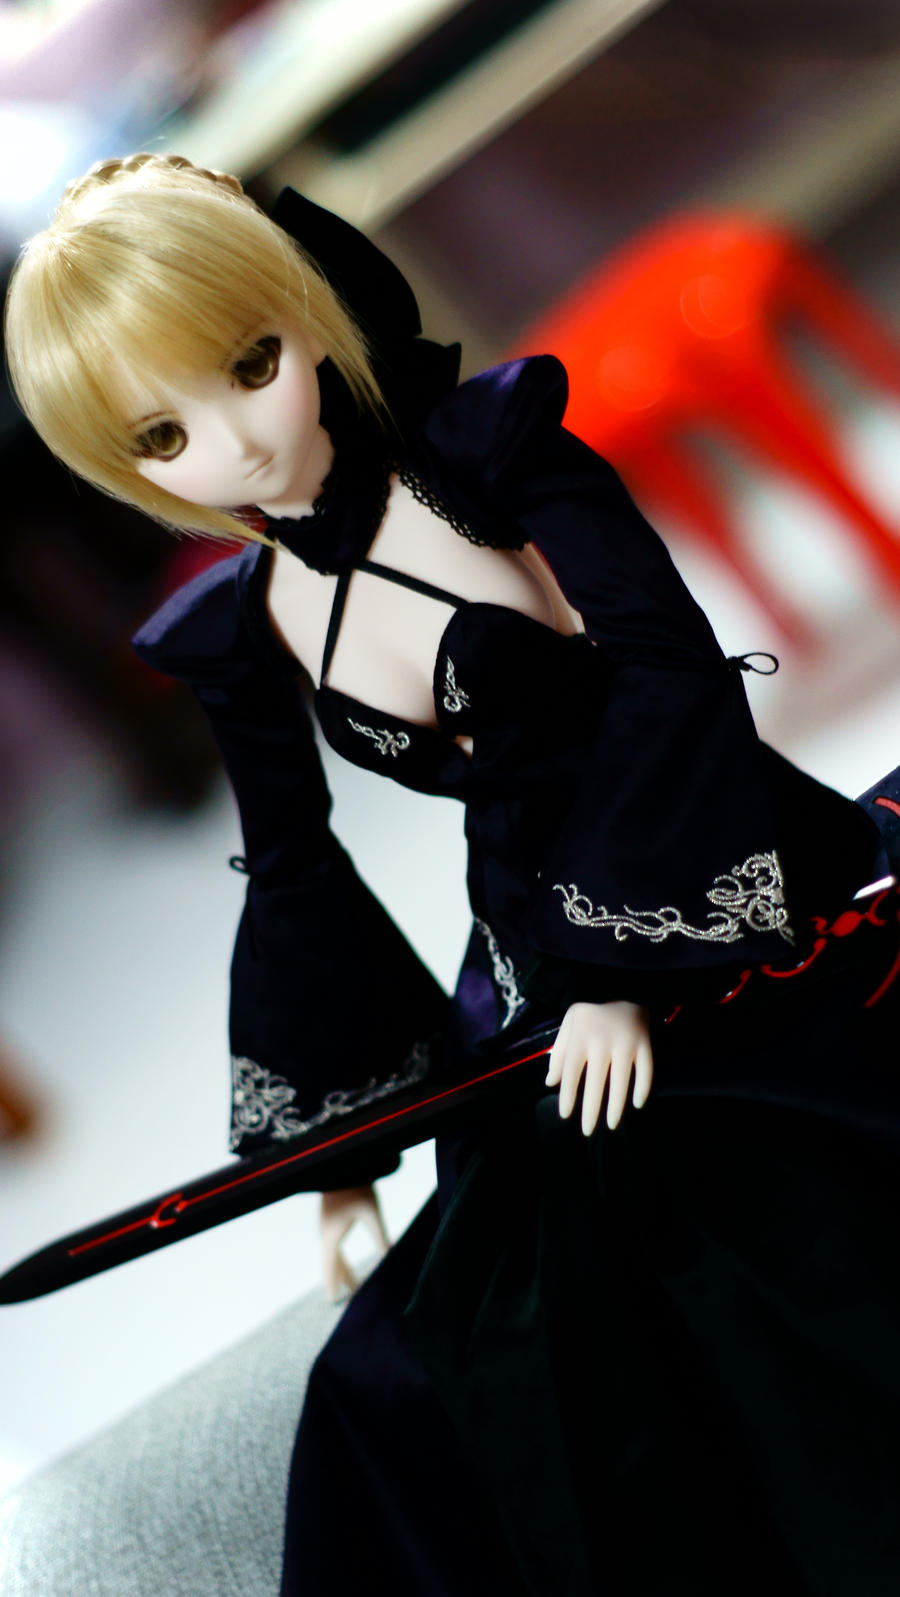 Saber Alter by shawnical